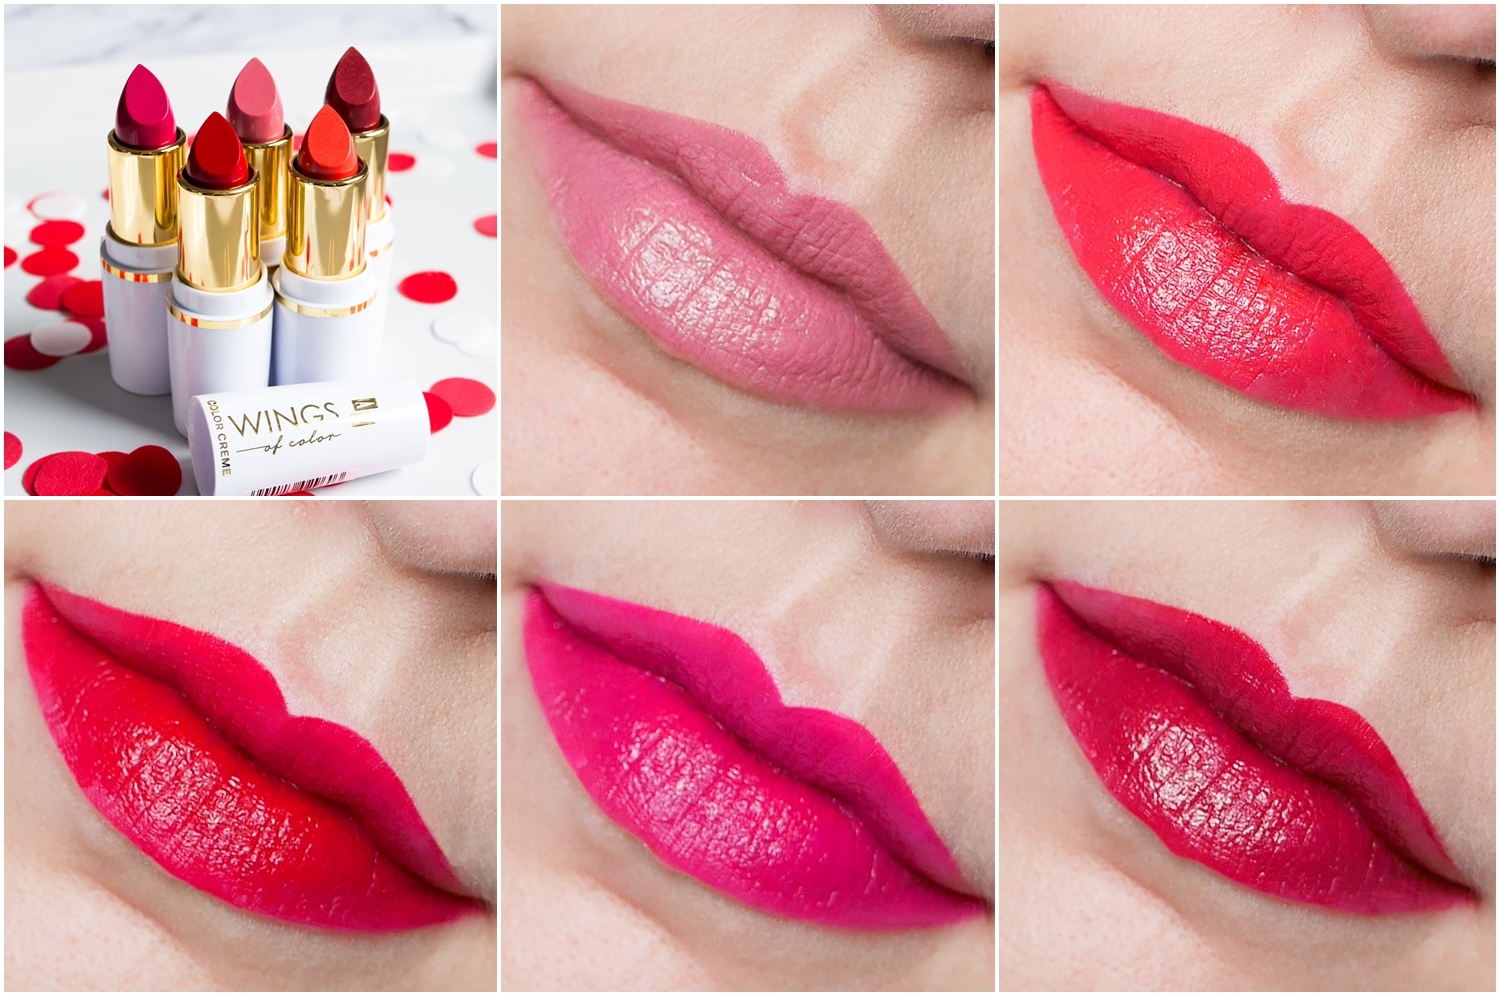 AA Wings of Colors Color Creme Lipstick 40 Cream Pink, 47 Orange Red, 48 Red Wine swatch